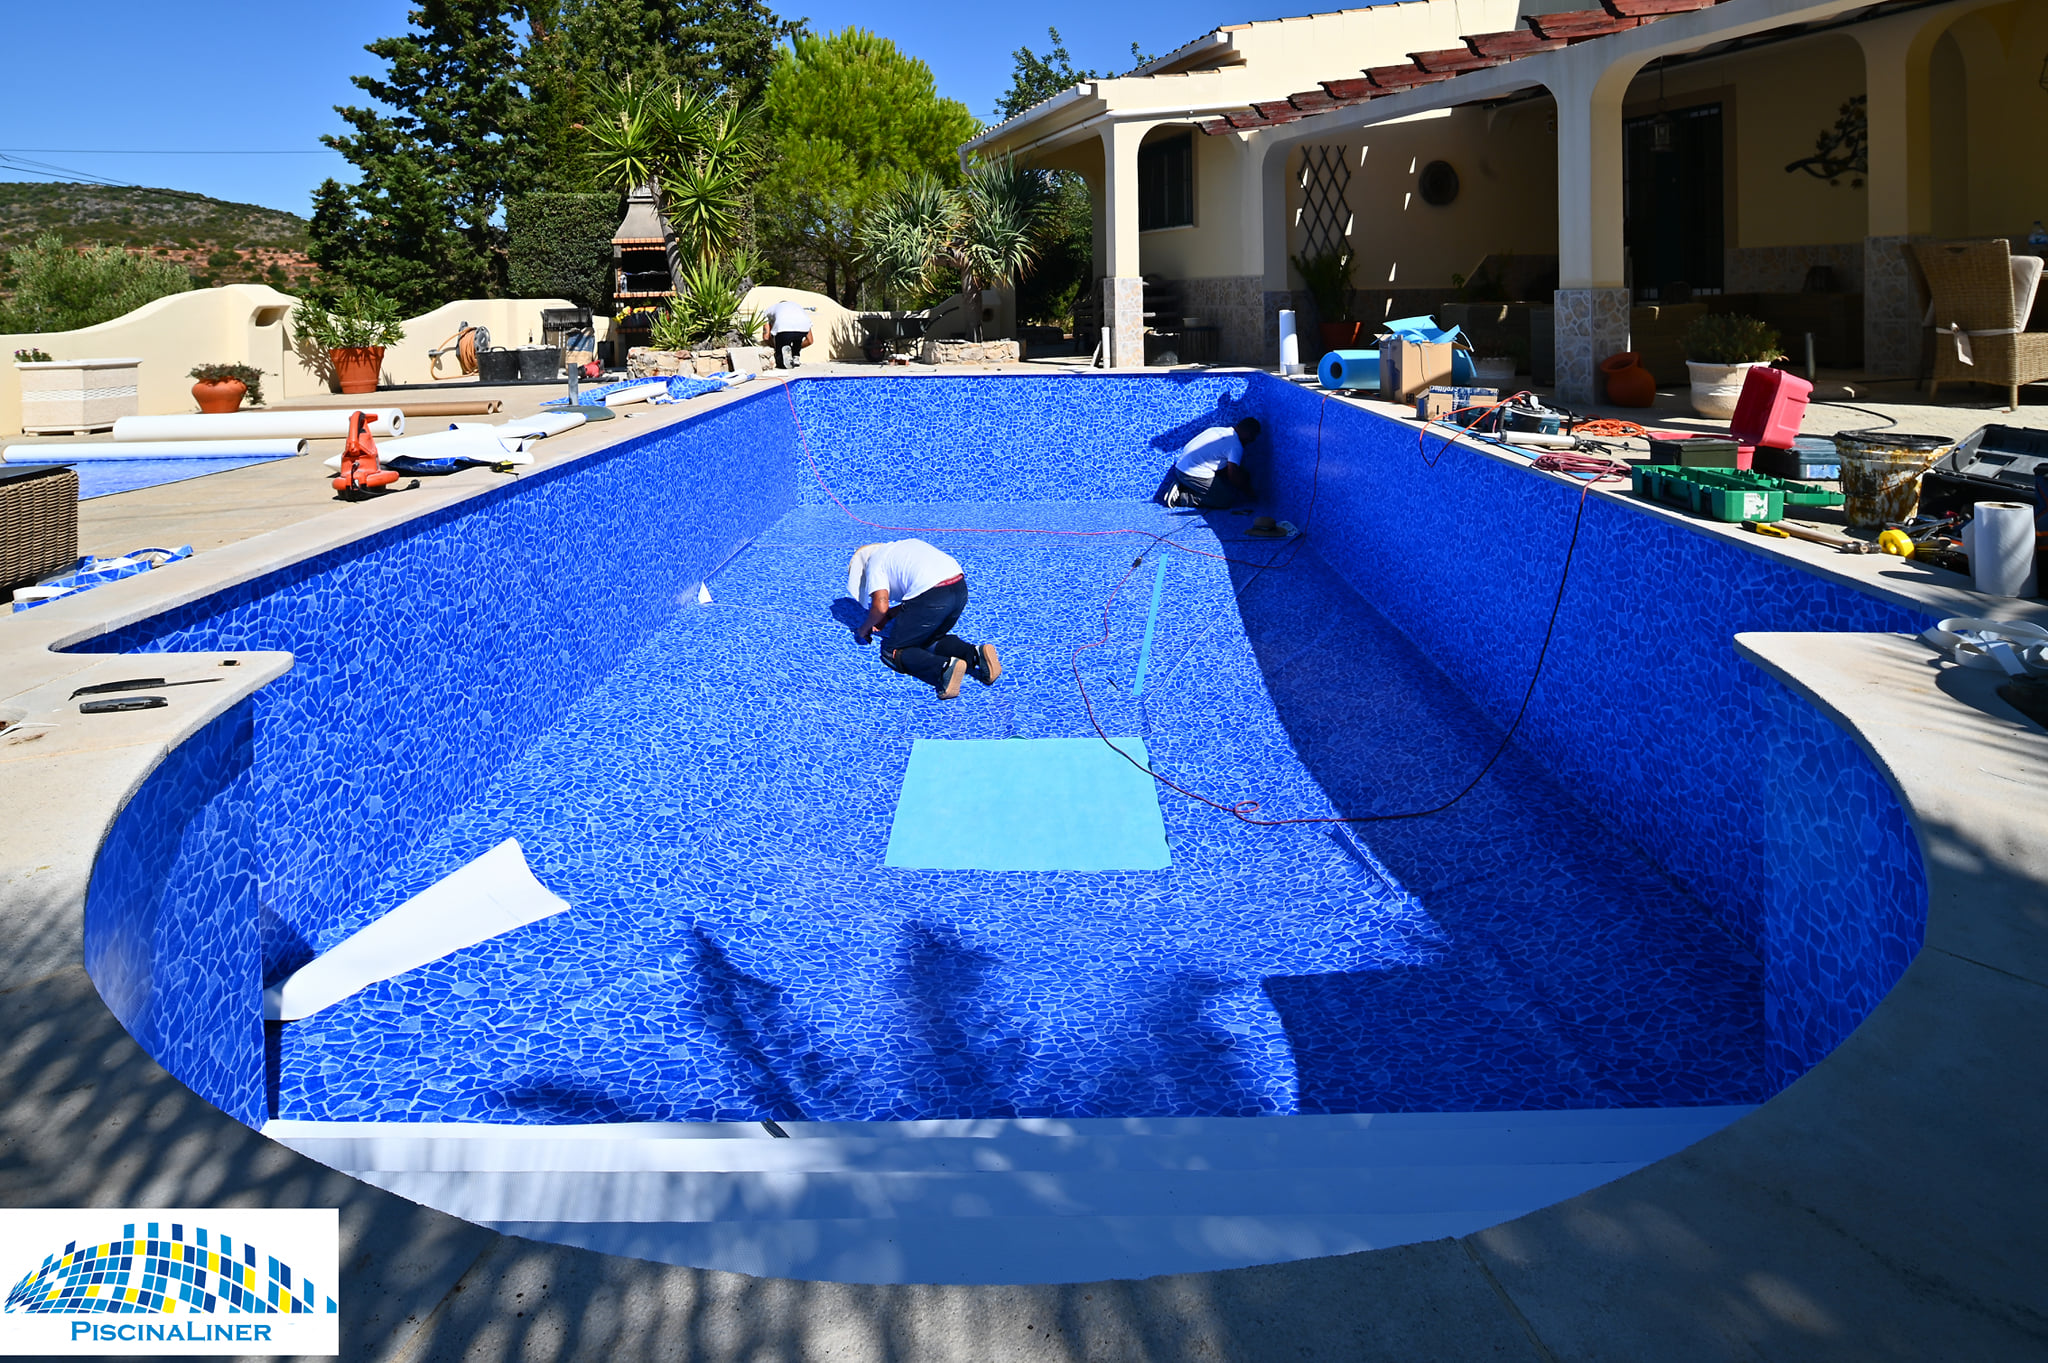 Renolit Portugal swimming pool liners